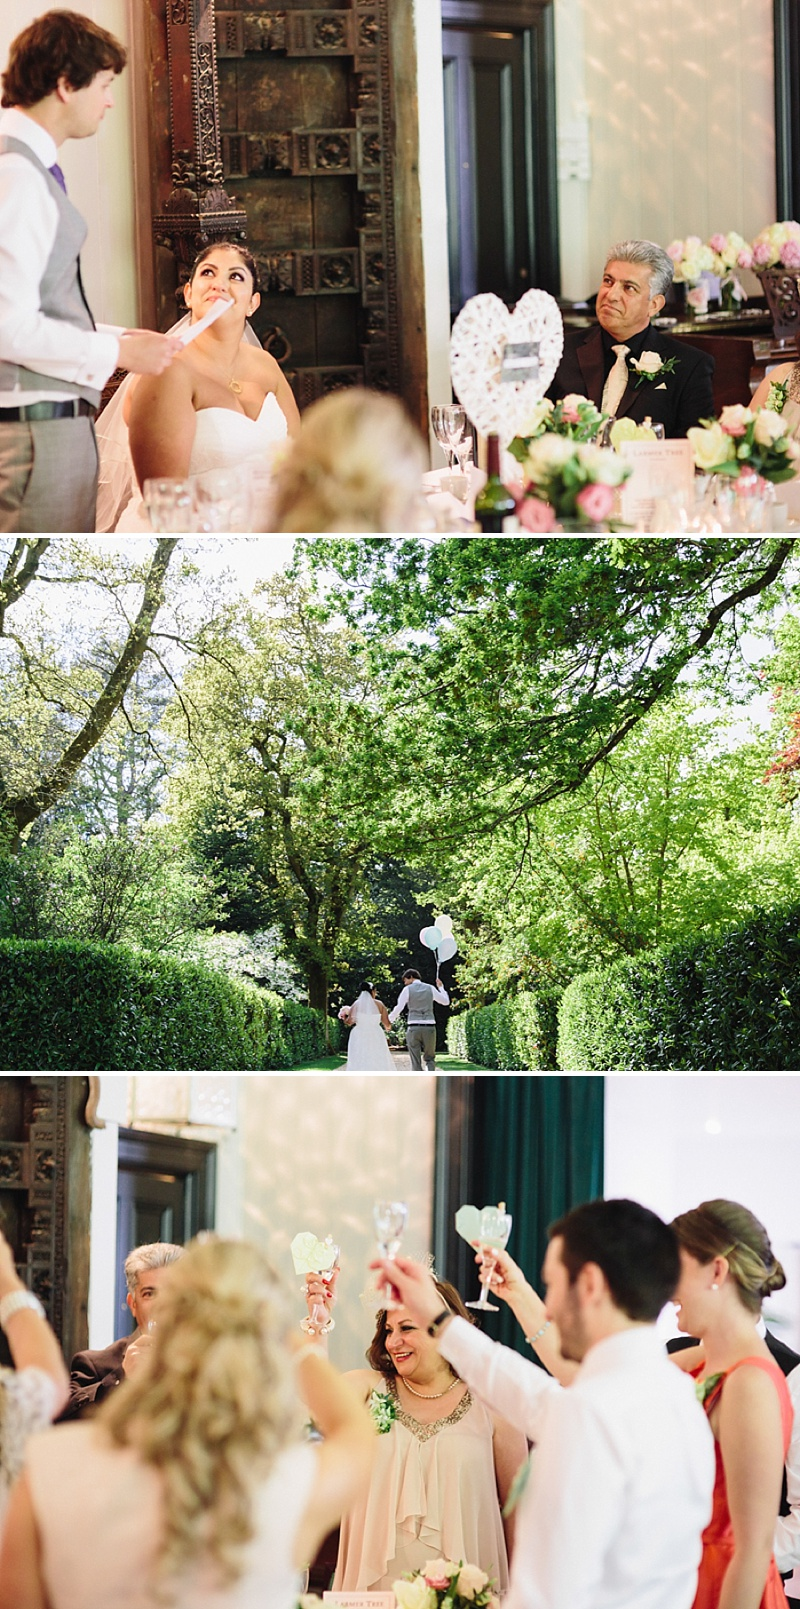 Elegant Wedding At The Larmer Tree Gardens In Wiltshire With Bride In Eternity Bride Gown With A DC Bouquet Headpiece Images By Lisa Dawn Photography_0013